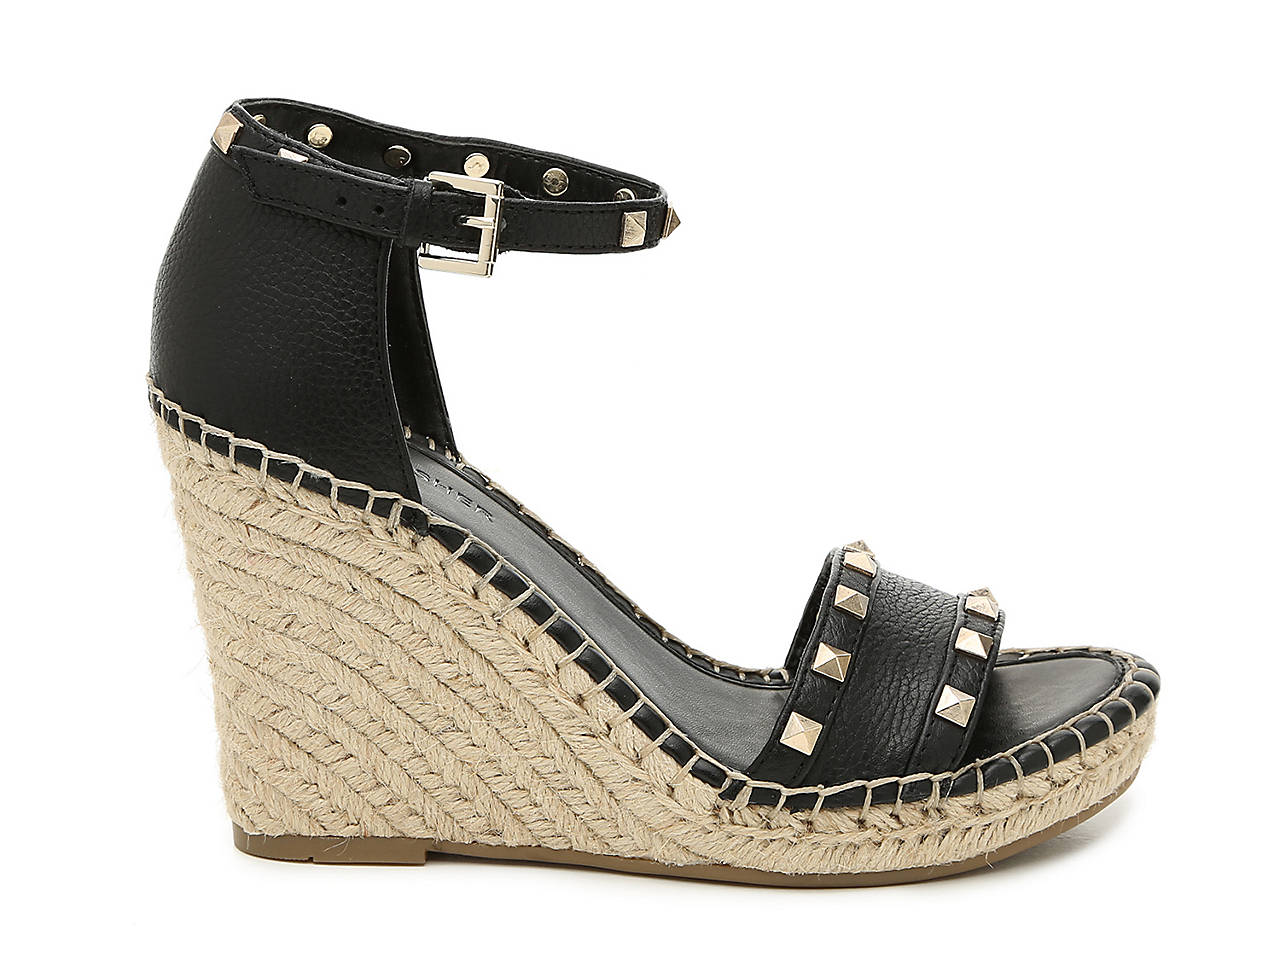 aaef075cb8d7 Marc Fisher Kegan Espadrille Wedge Sandal Women s Shoes